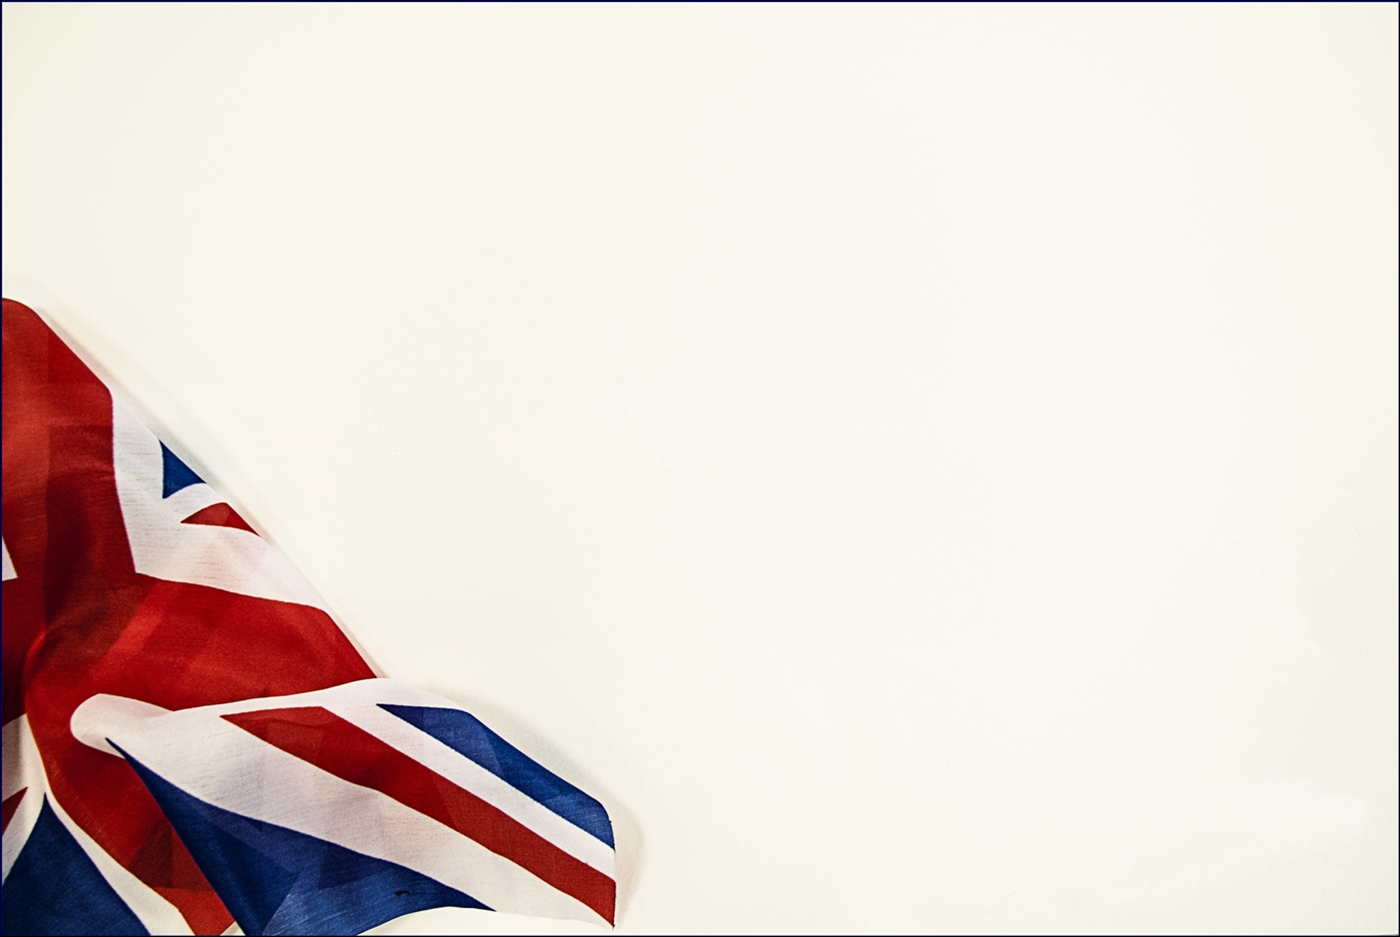 A CORNER OF A FORGOTTEN LAND by Rojer Weightman